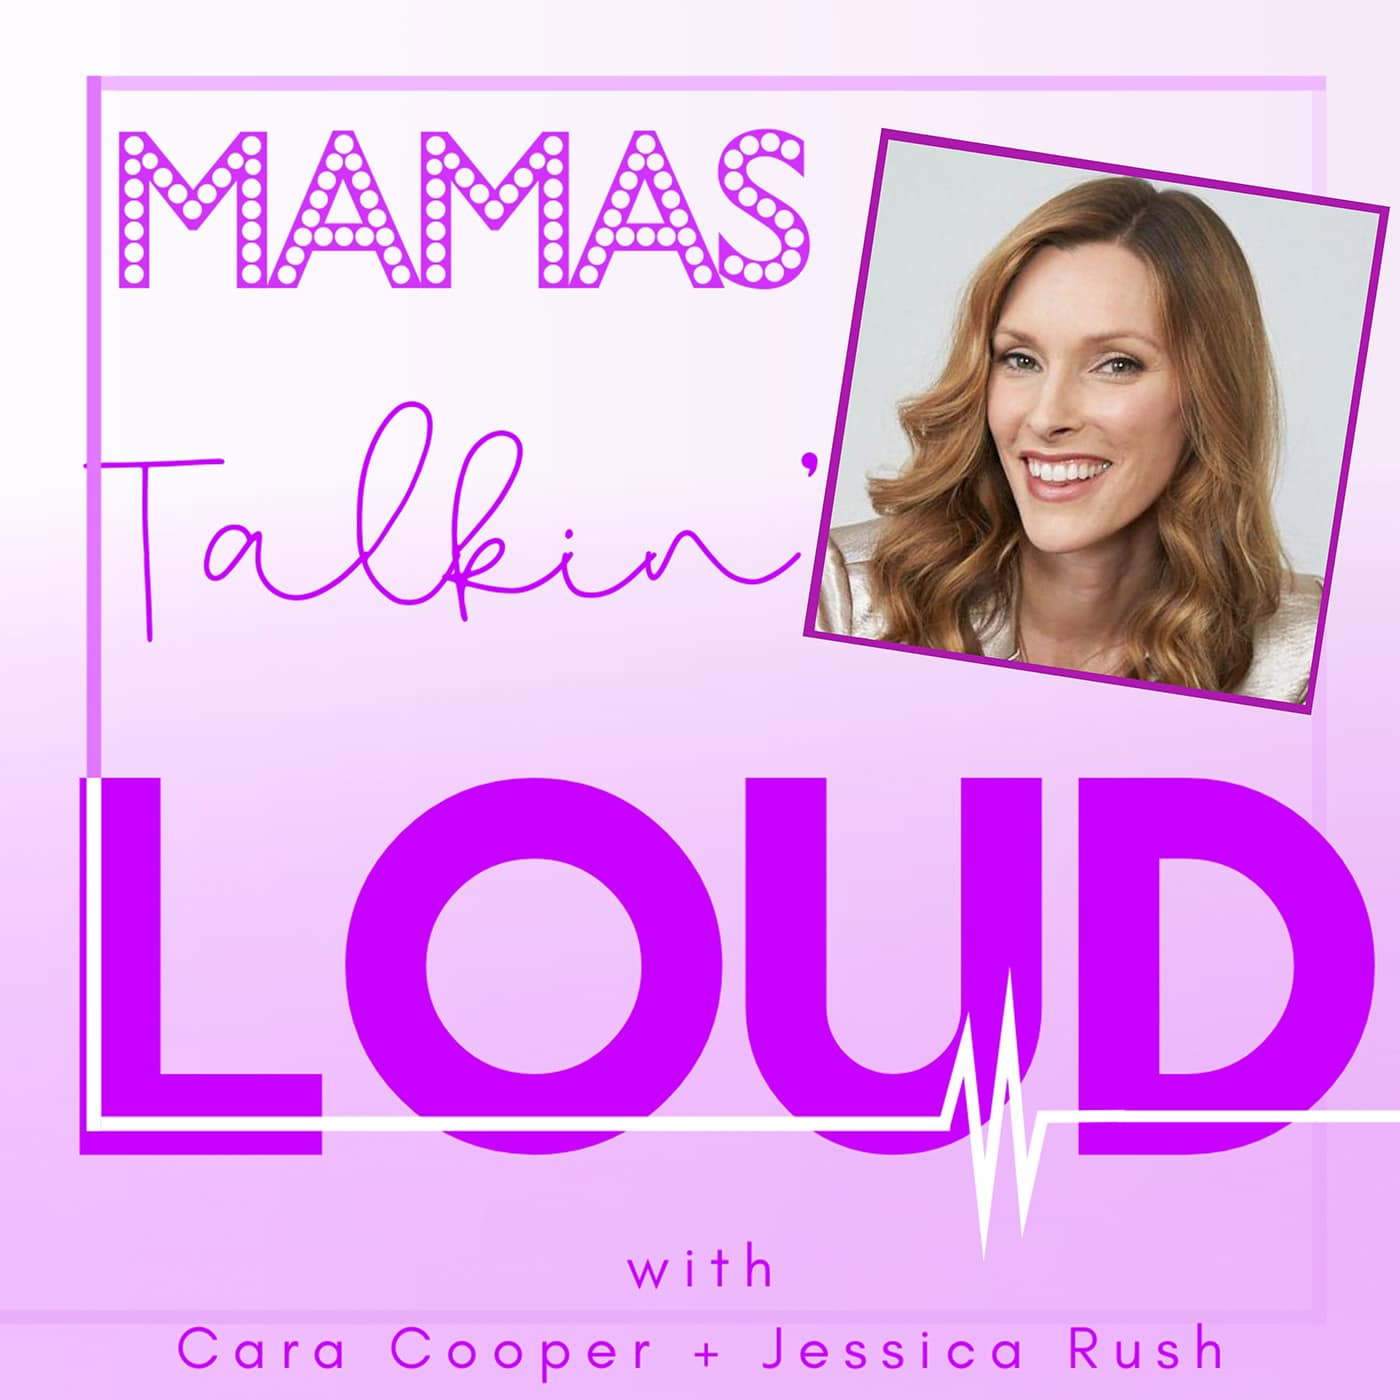 Mamas Talkin Loud Episode 12 - Emily Fletcher, Love Yourself